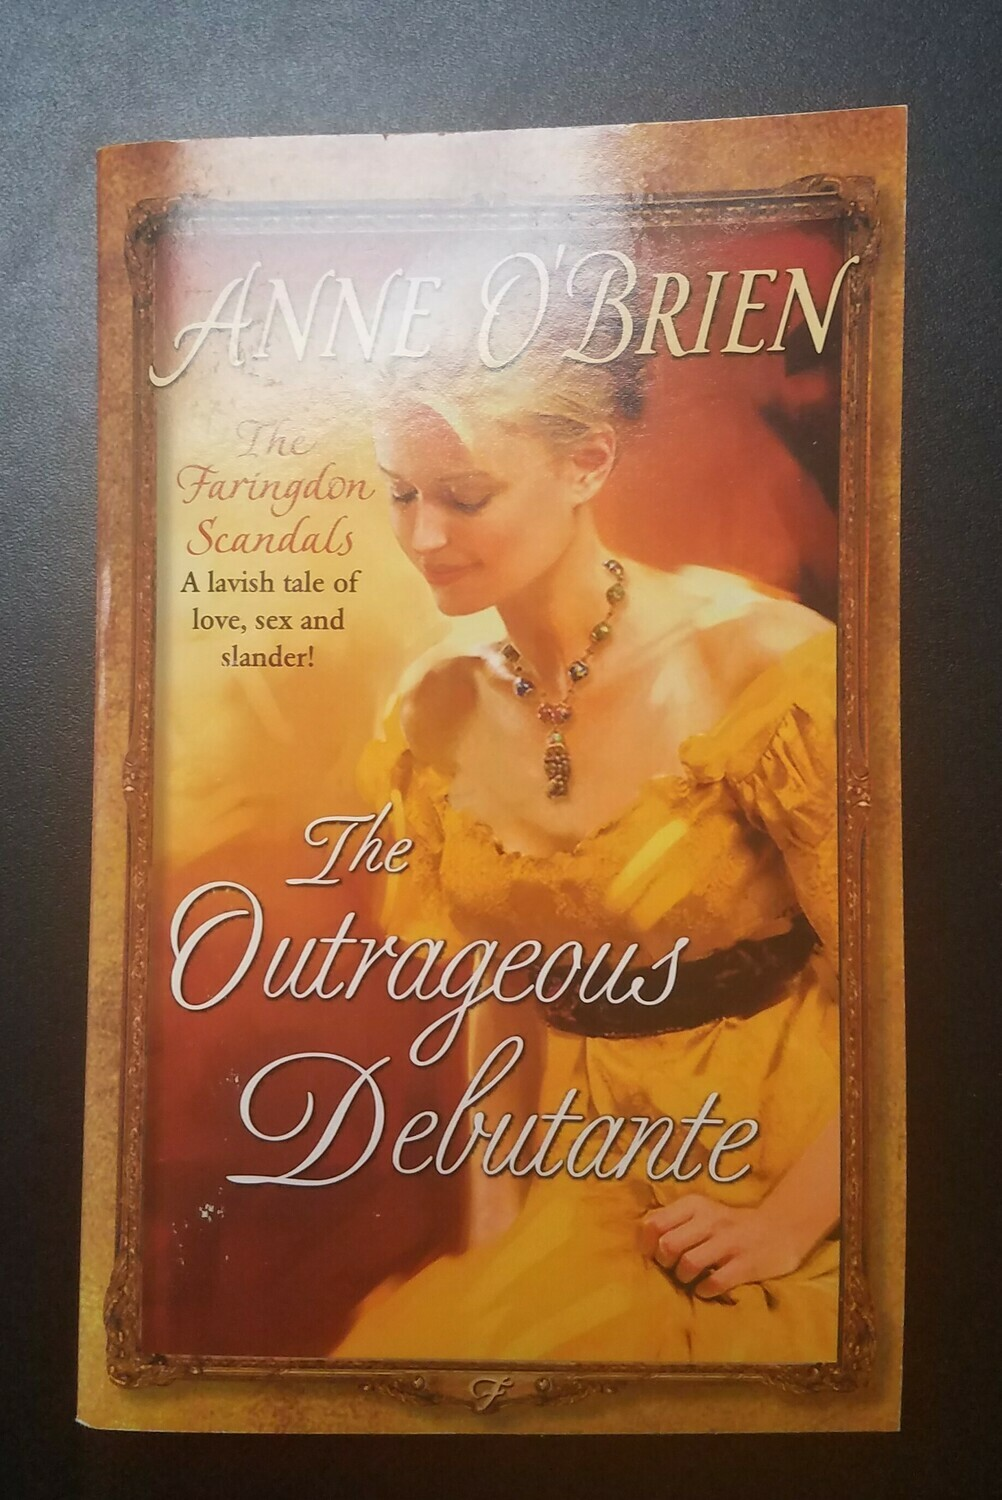 The Outrageous Debutante by Anne O'Brien